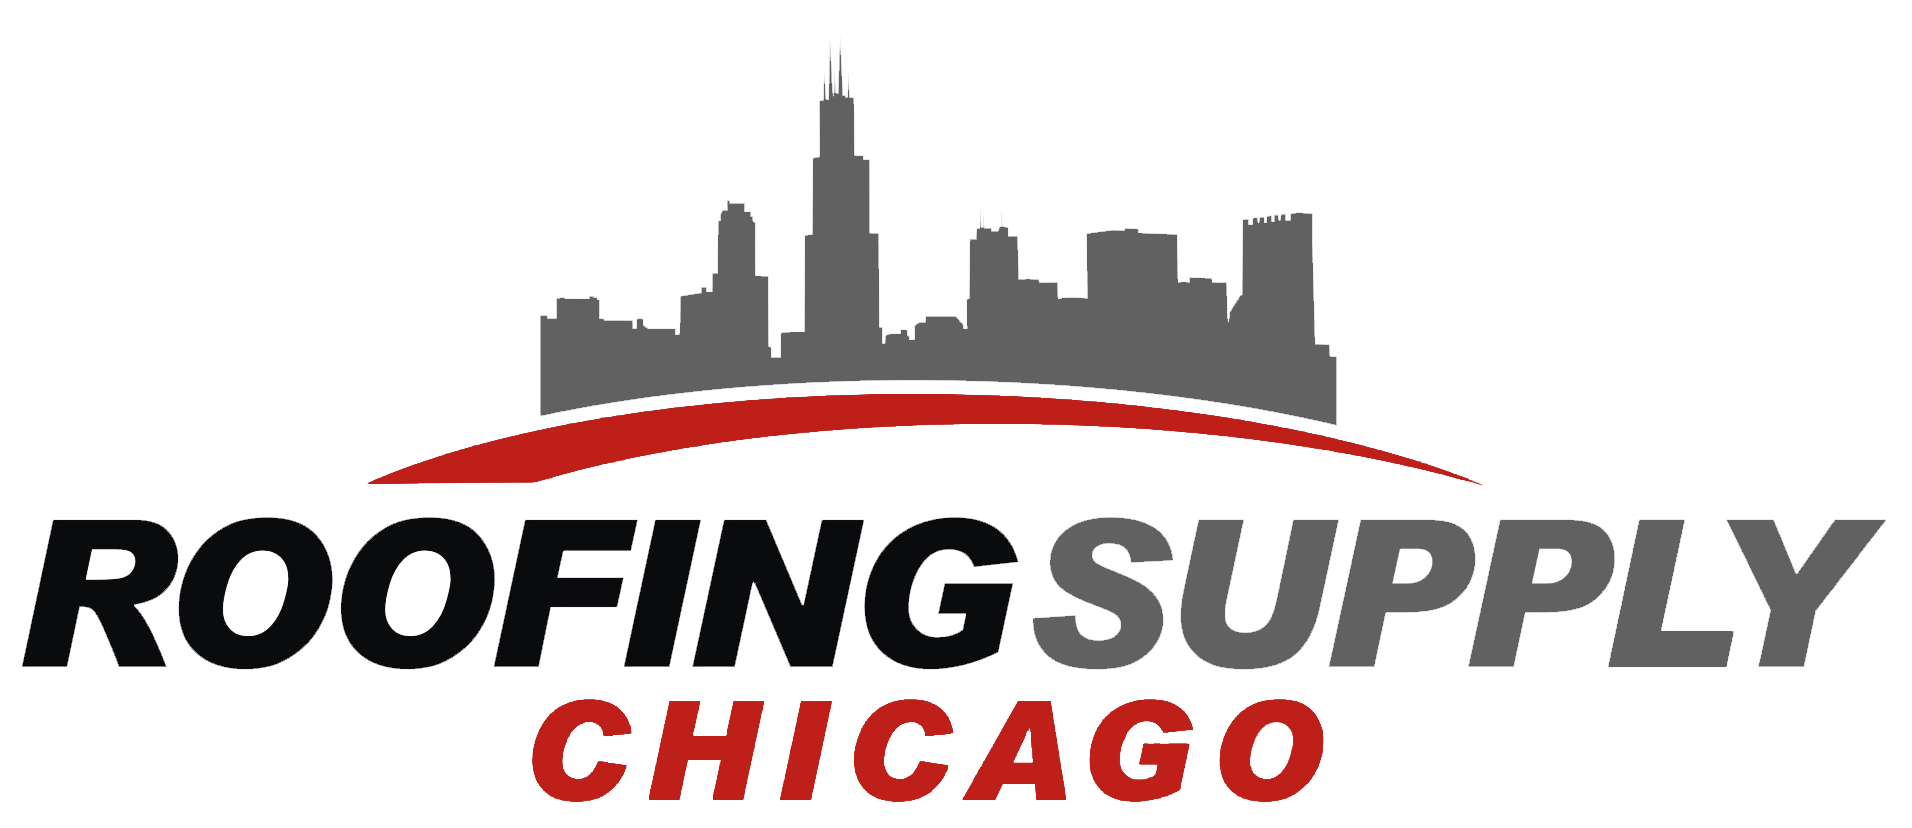 Roofing Supply Chicago